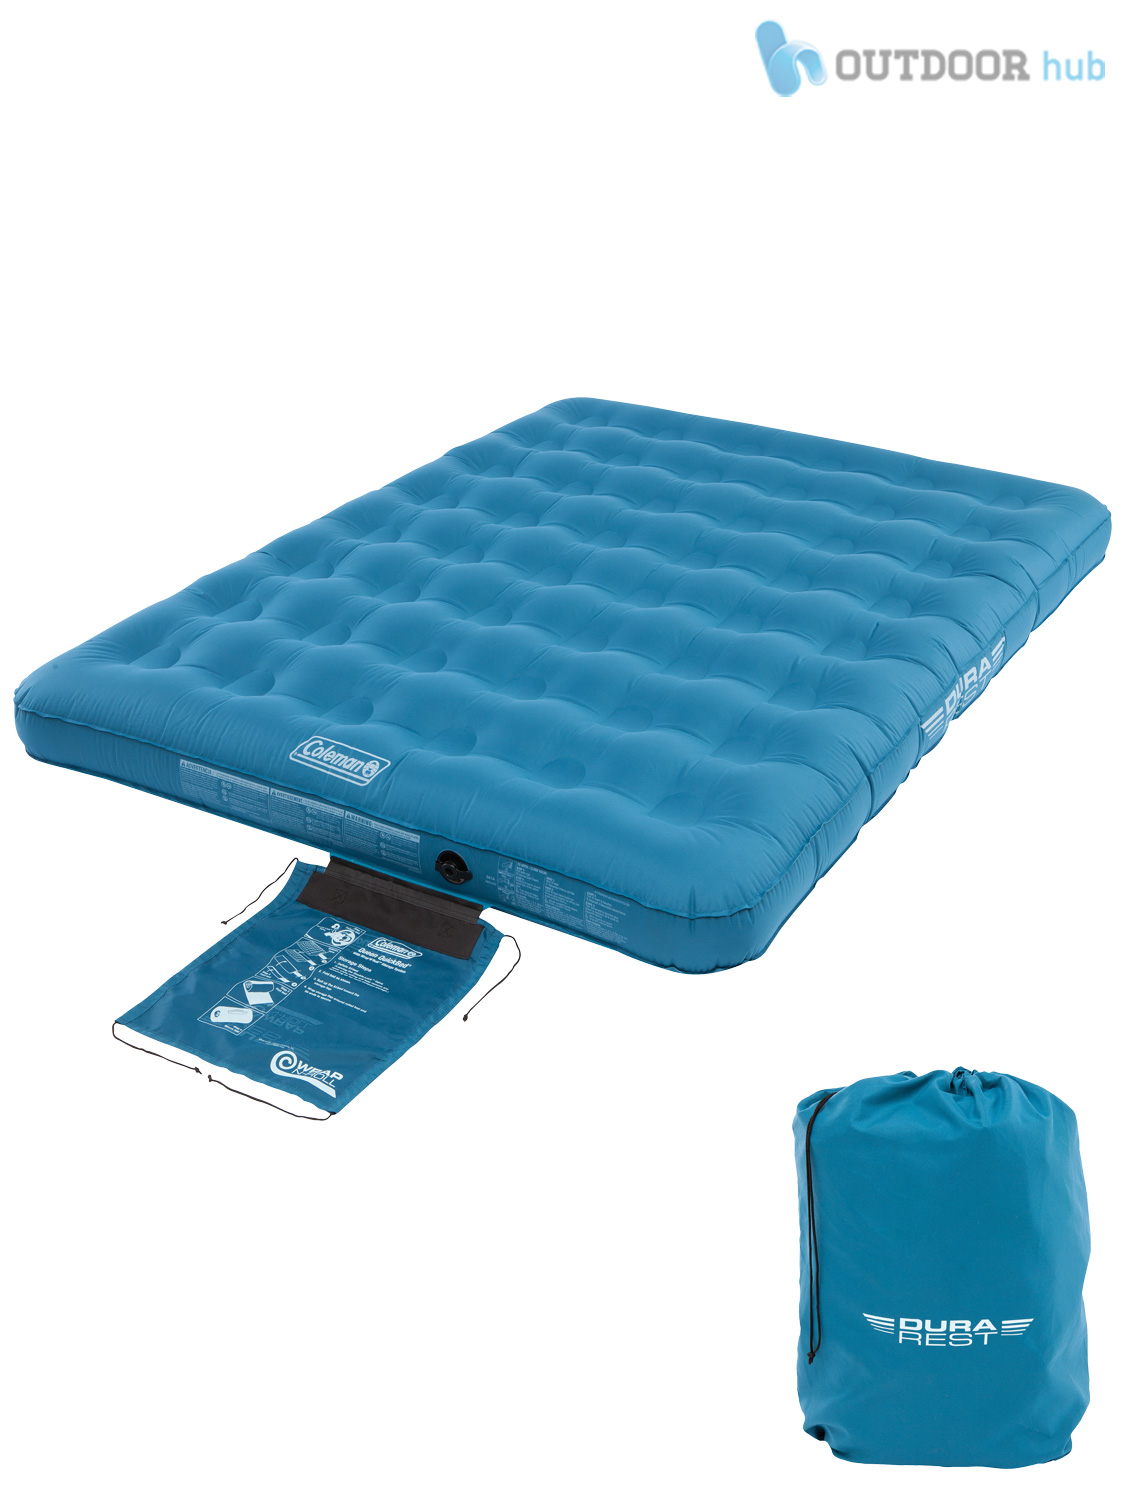 Double Inflatable Mattress Coleman Durarest Airbed Single Double Raised Inflatable